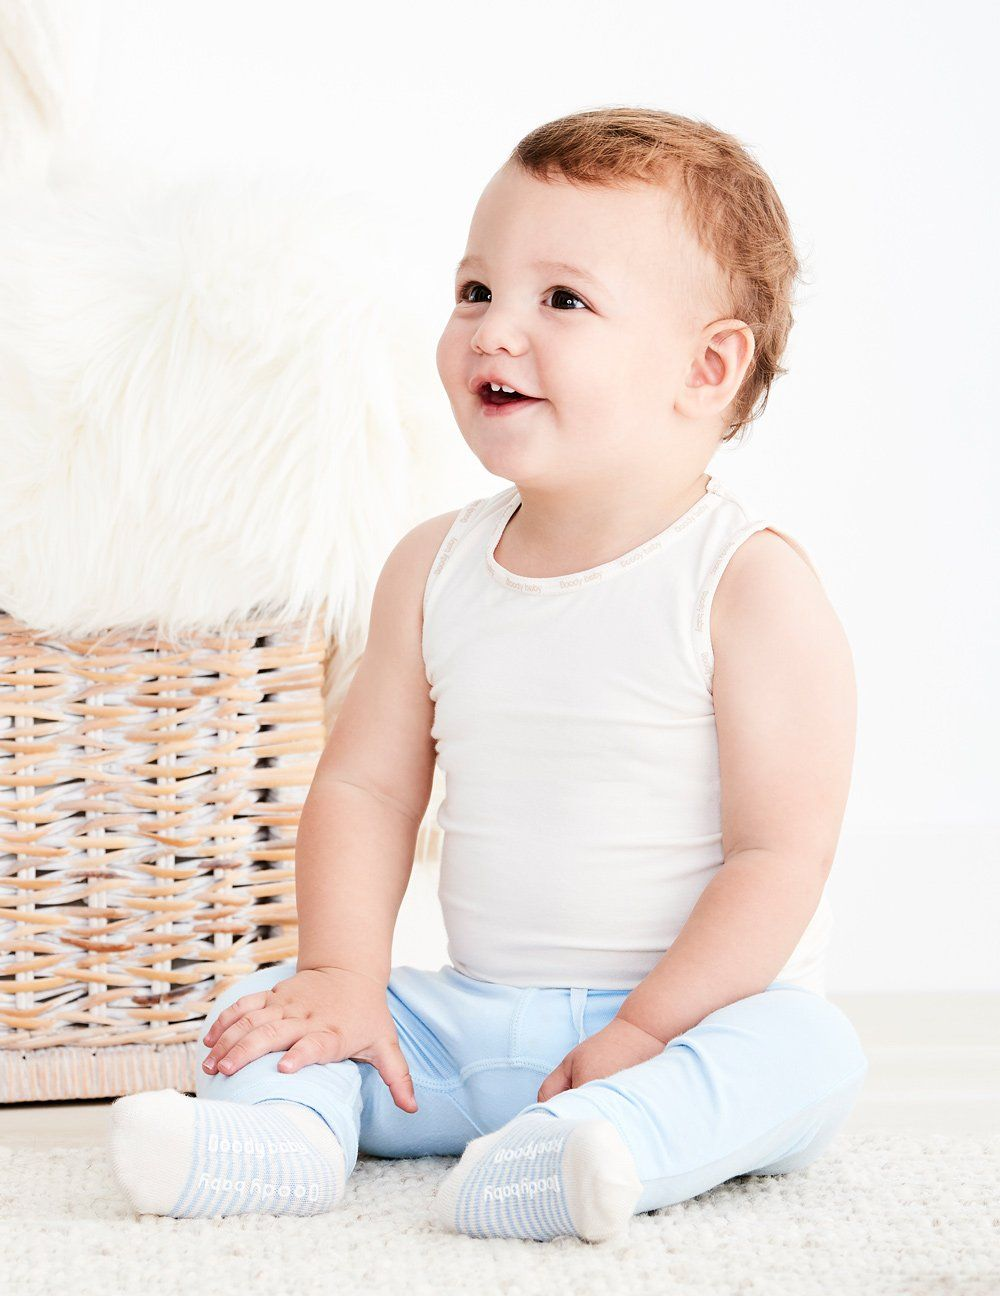 fd4b36da1ab Baby Bamboo Clothing & Accessories | Boody Australia Baby Bamboo, Clothing  Accessories, Us Store